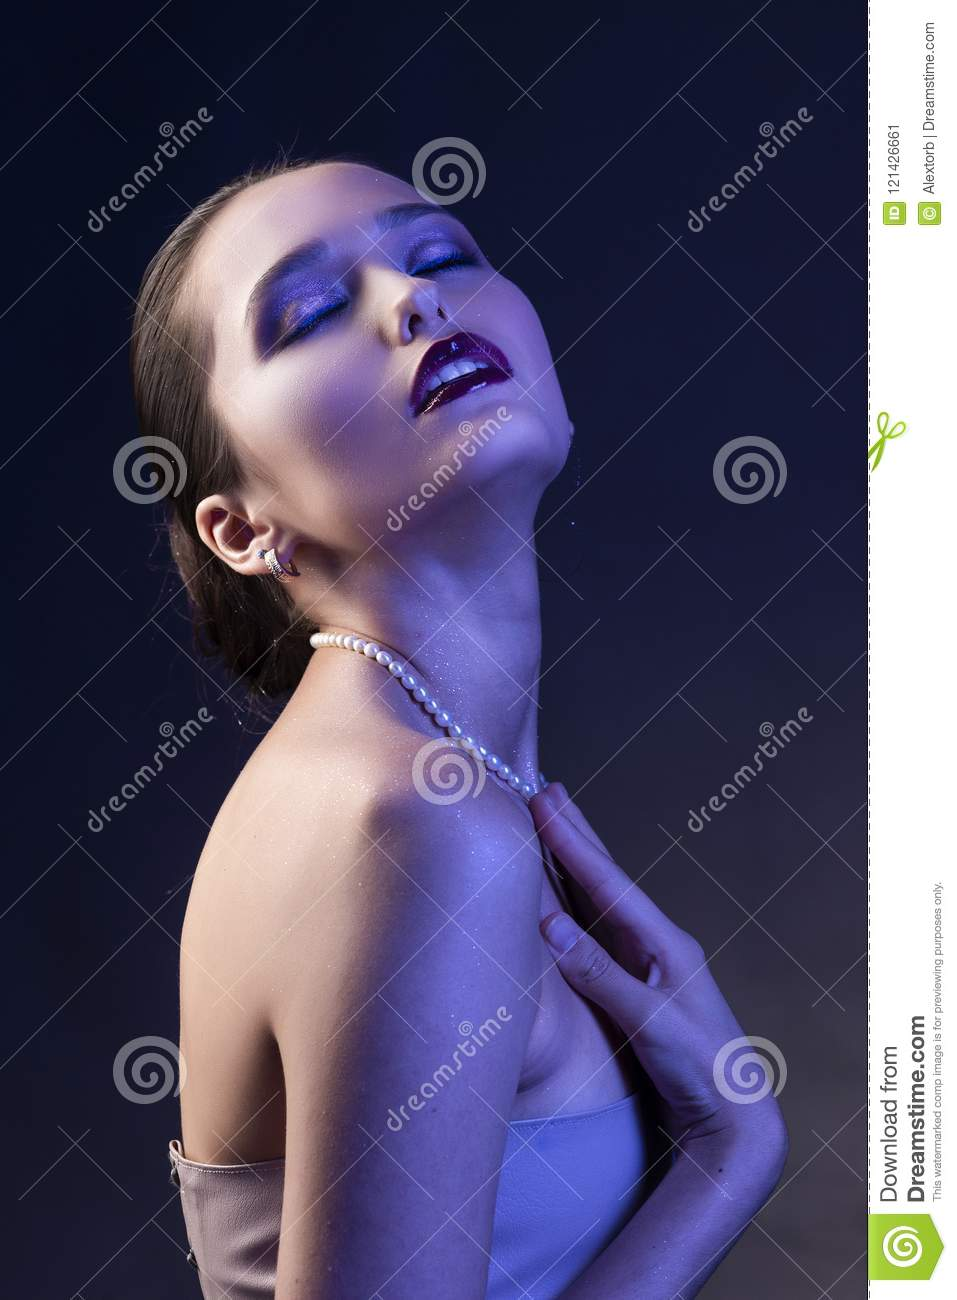 Srxy nude emo girls with colored hair